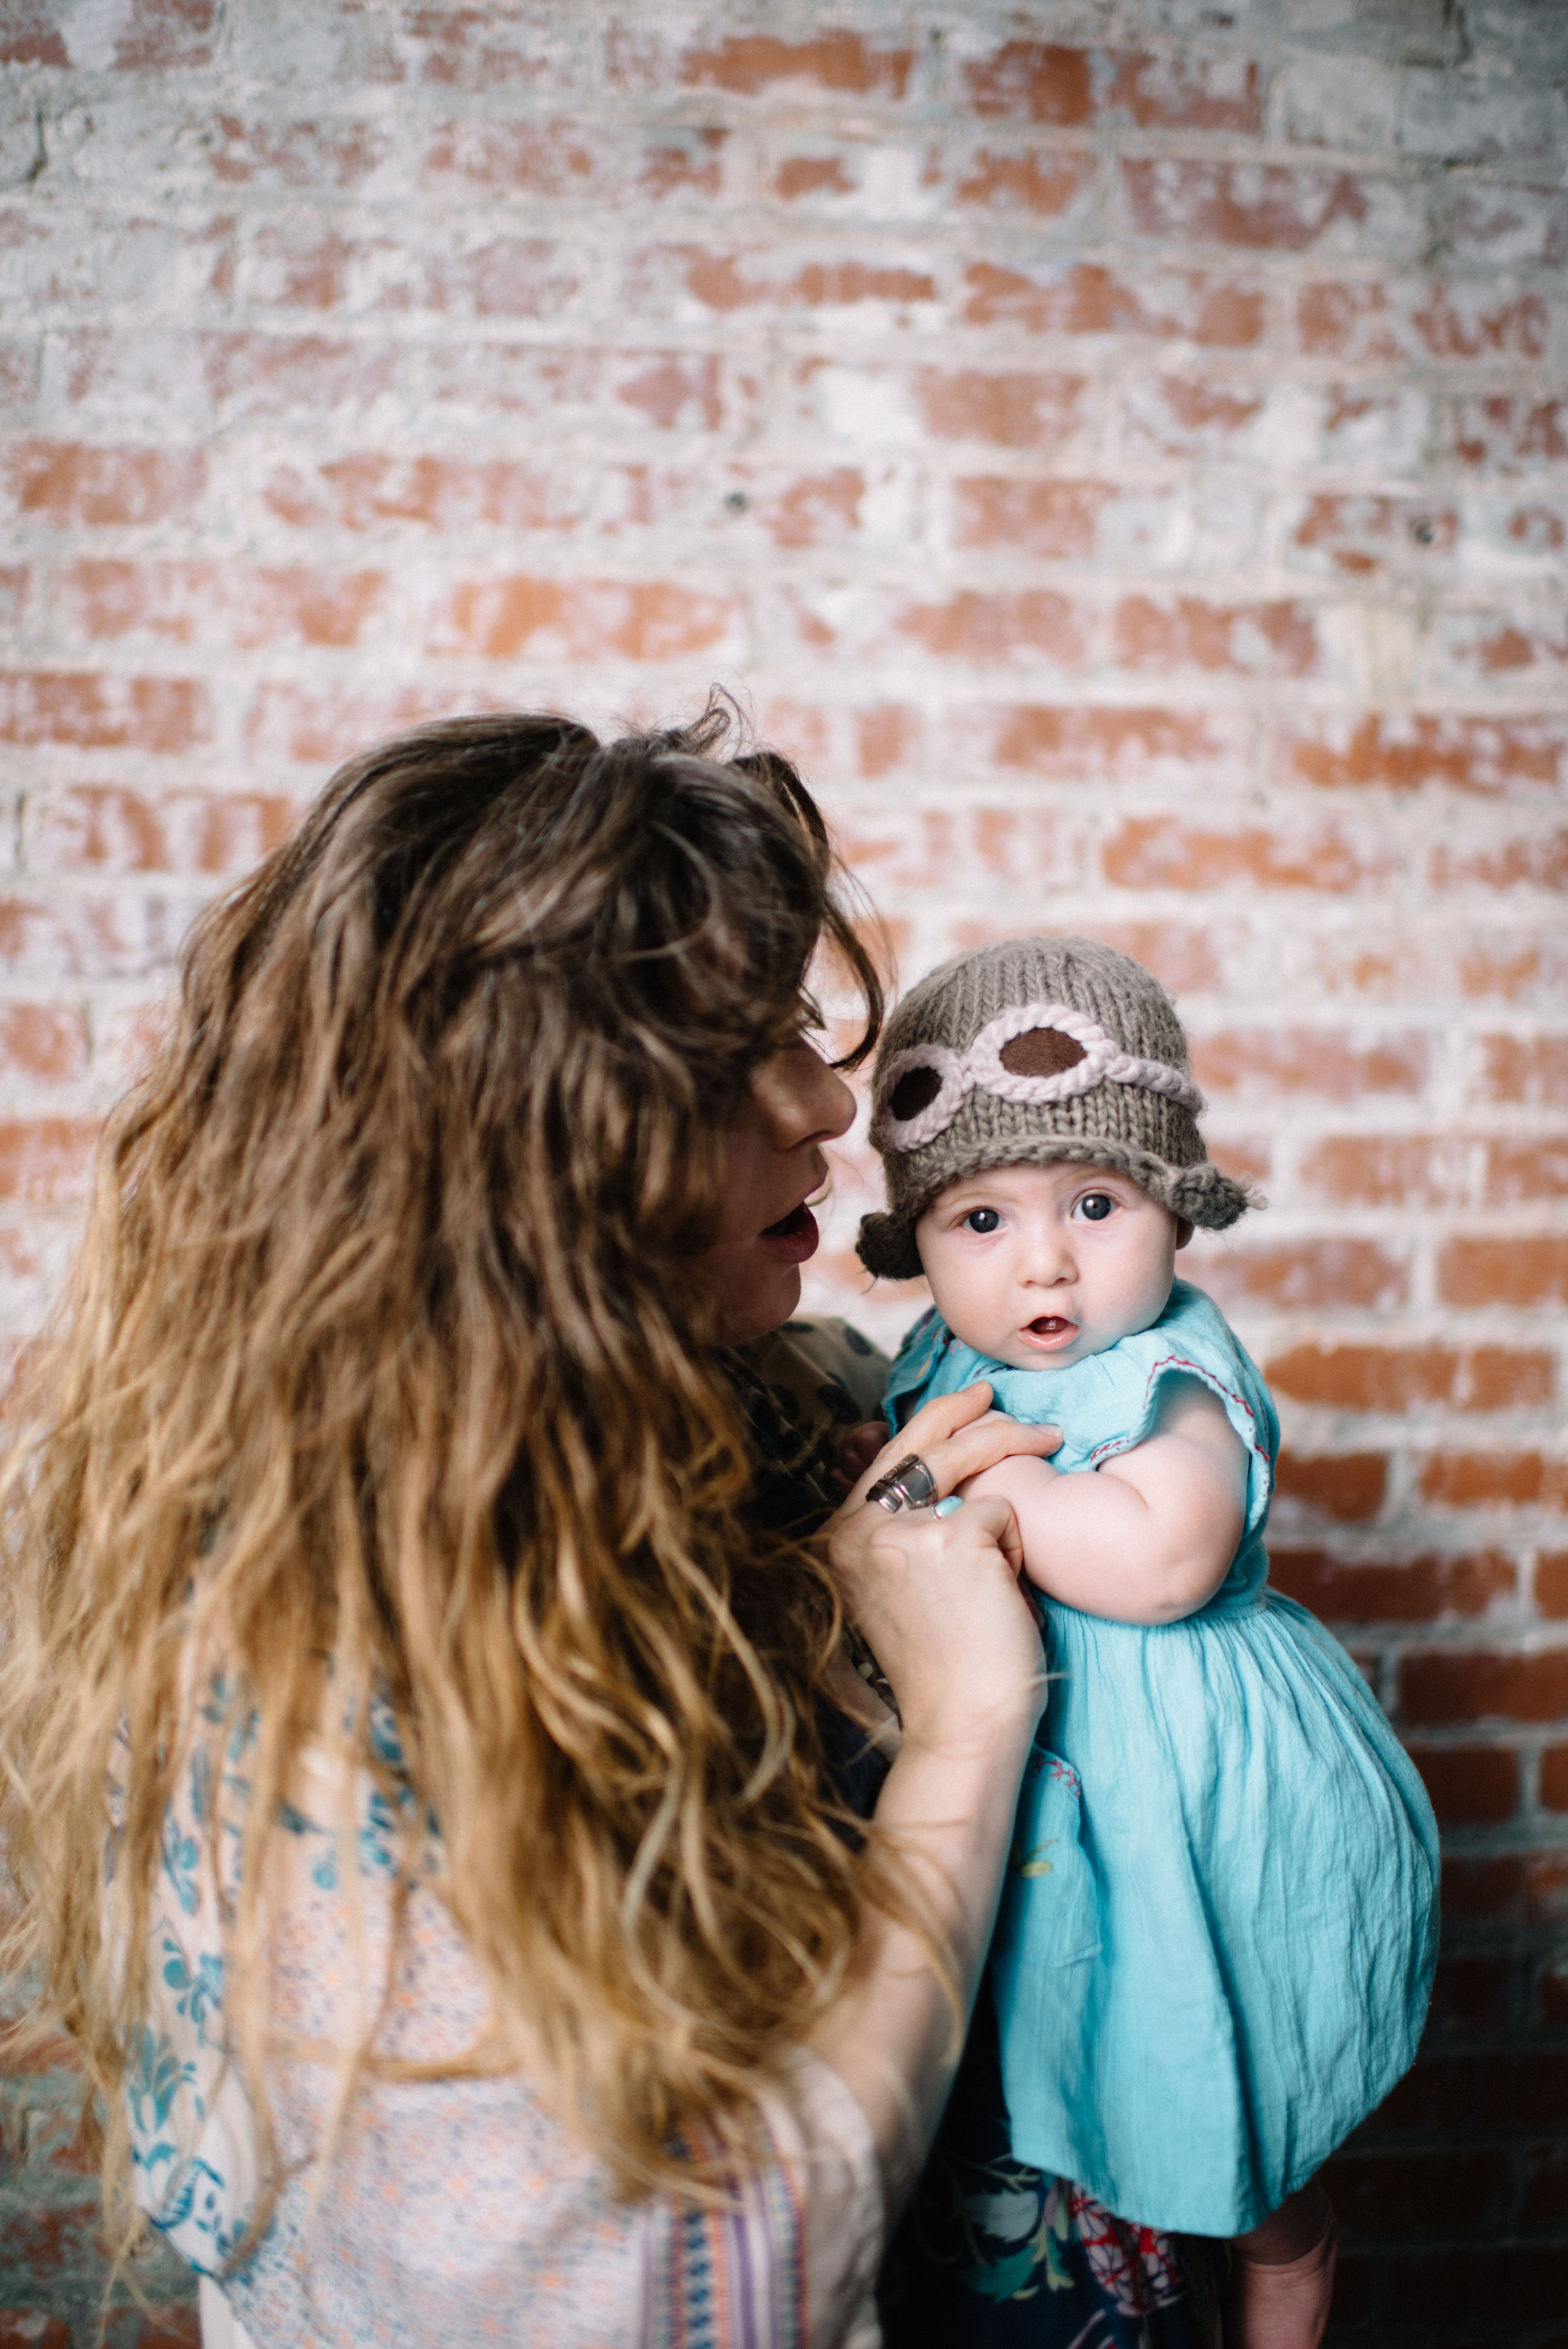 Wavy Alabaster x Rose Colored Creative: The Lesson My Sixth-Month Old is Teaching Me